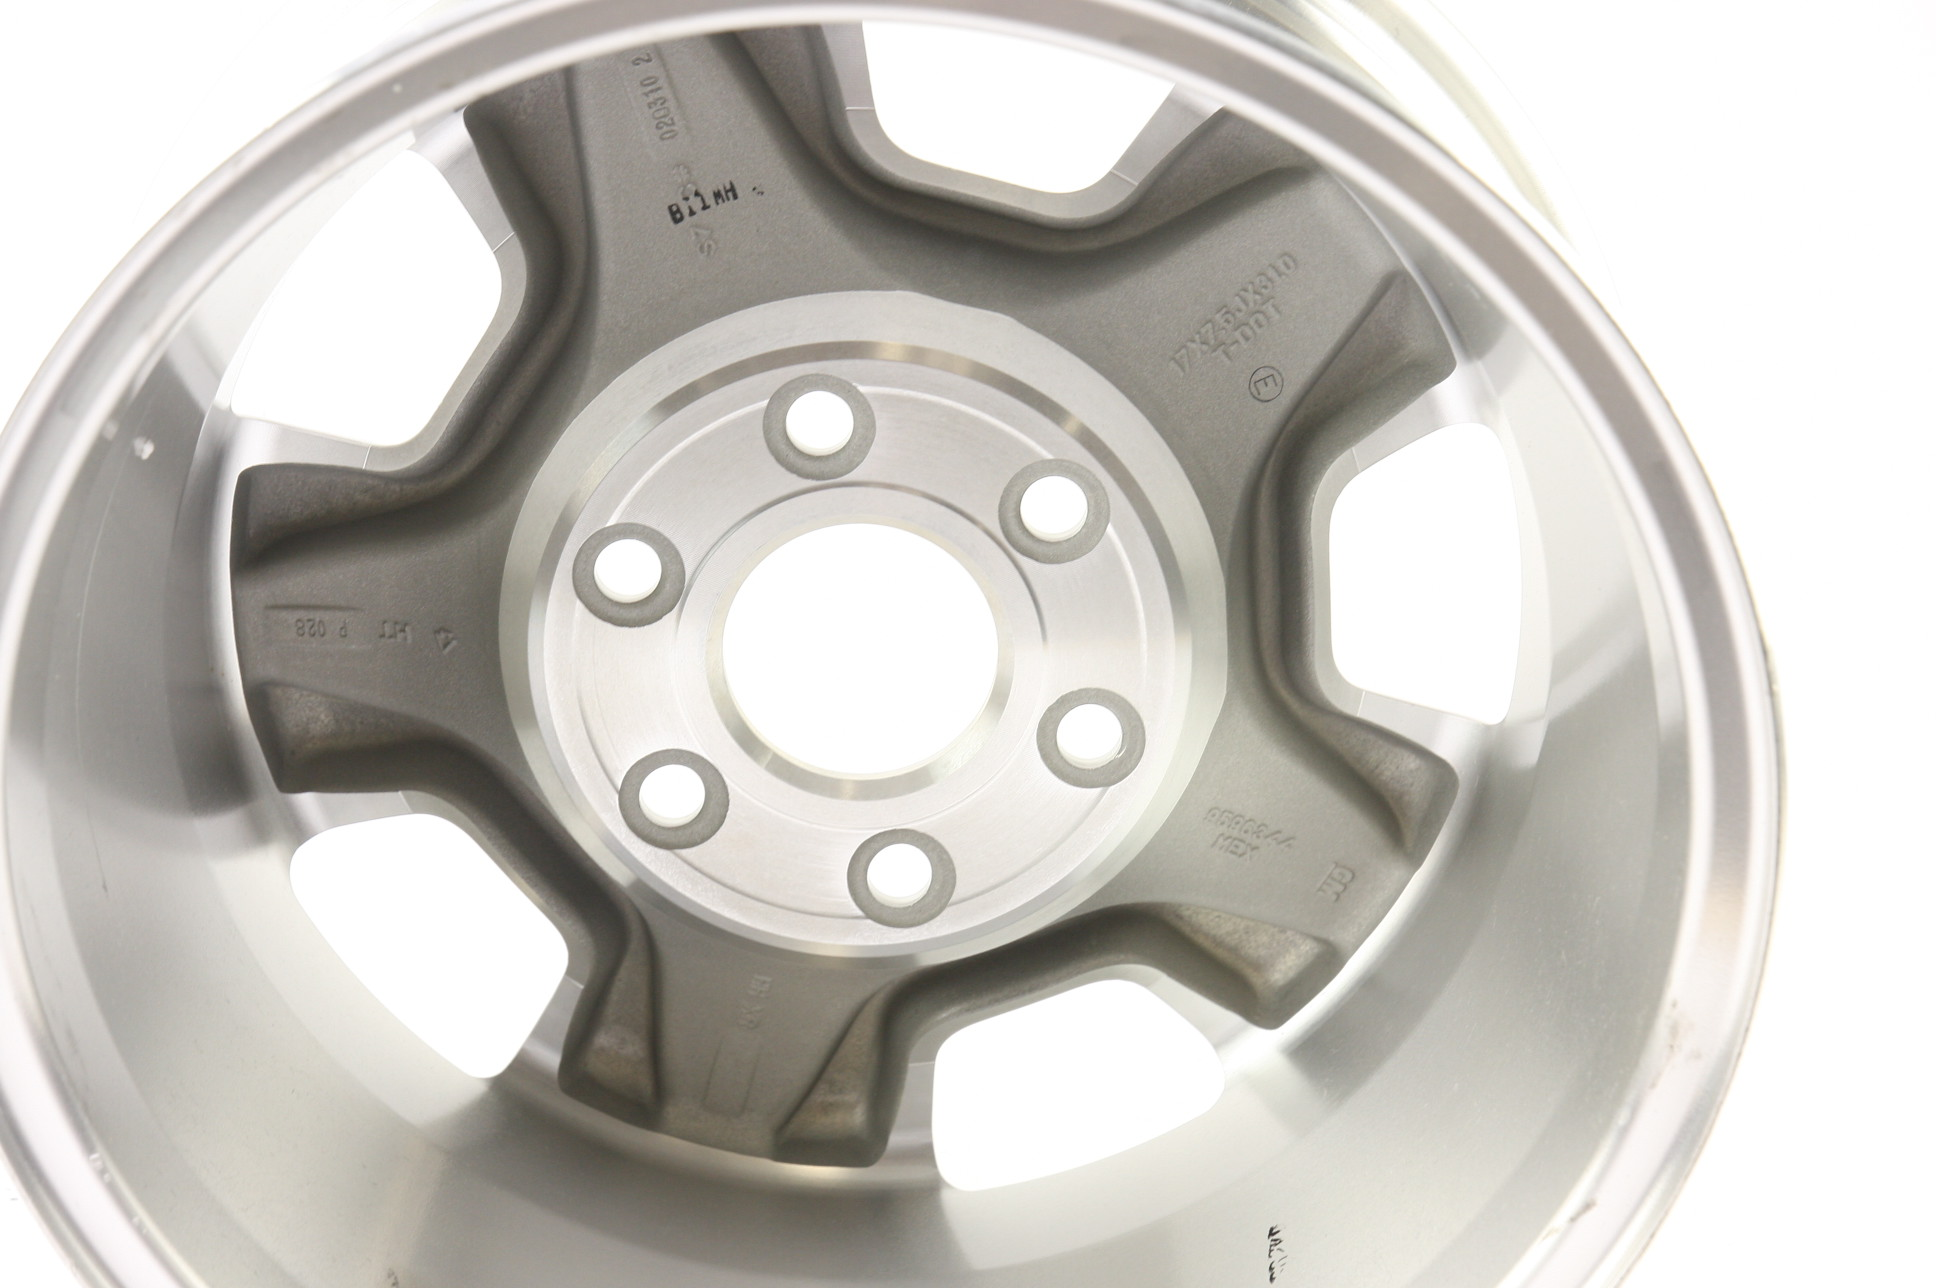 "* New OEM 9596050 Genuine GM Avalanche Silverado Suburban 17"" Wheel Alloy Rim - image 9"